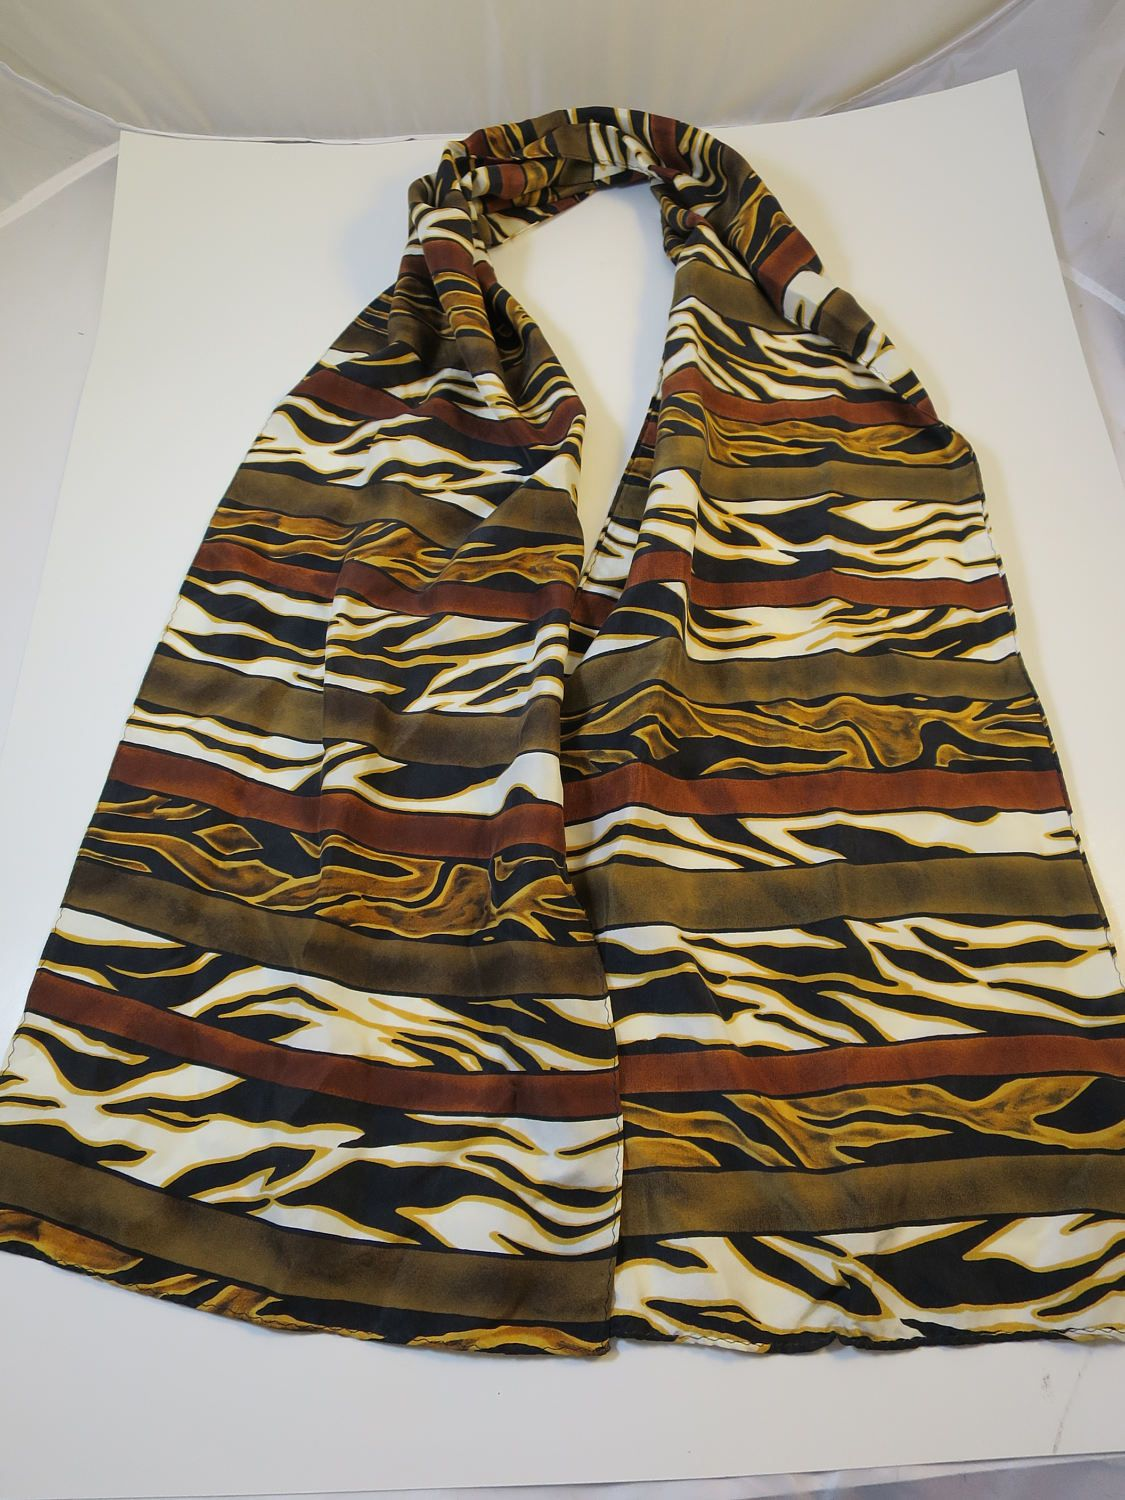 9a98d70c9d6c Vintage Silk Scarf Animal Print Stripe Gold Brown White Black 100% Silk 10  x 56 inches Made in Korea Safari Look Long Neck Scarf by  BonniesVintageAttic on ...